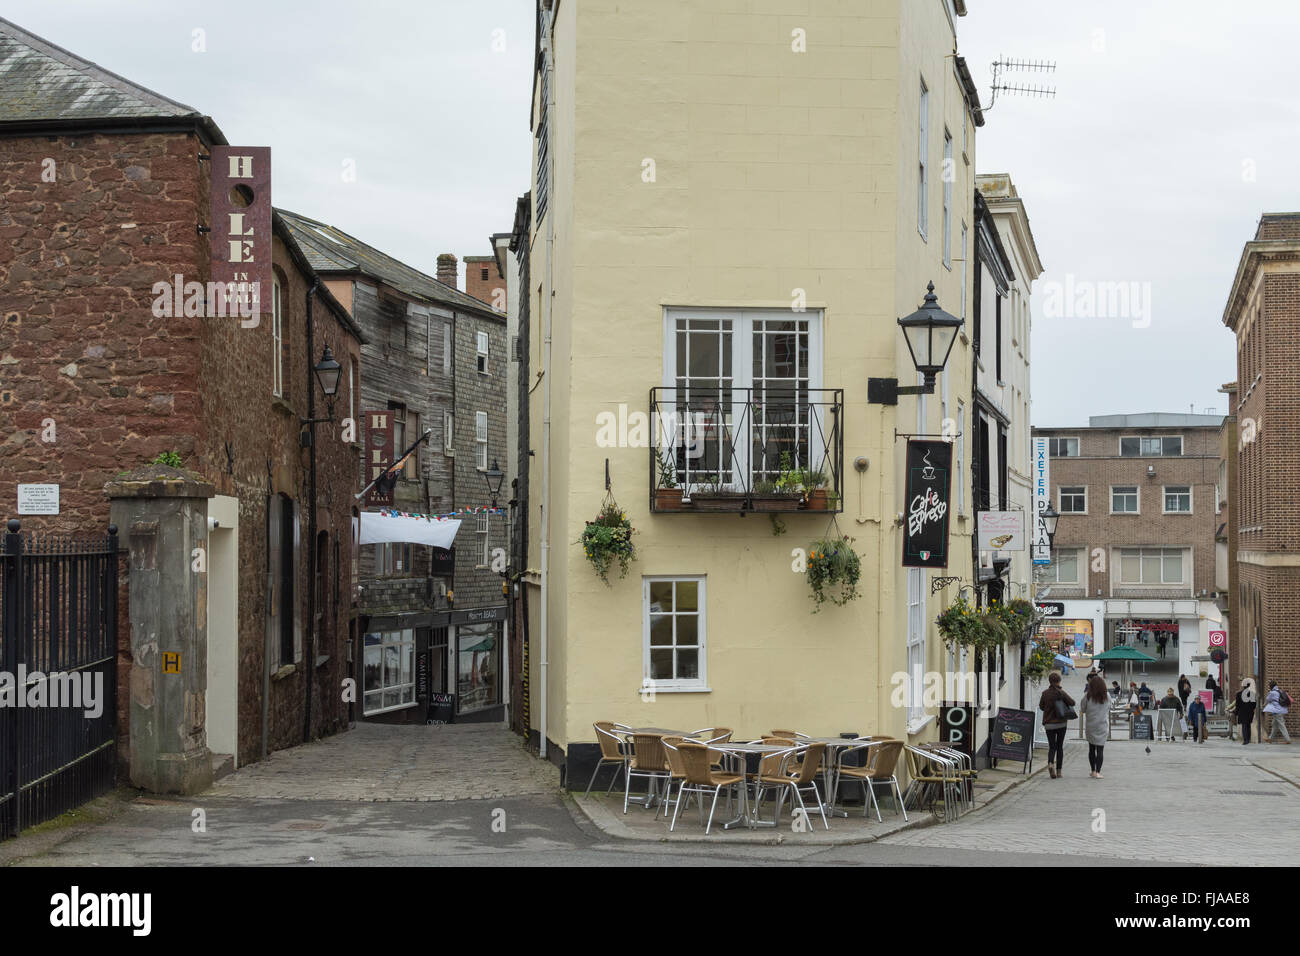 The Hole in the Wall sports bar and restaurant and Cafe Espresso - Exeter City Centre, England, UK - Stock Image